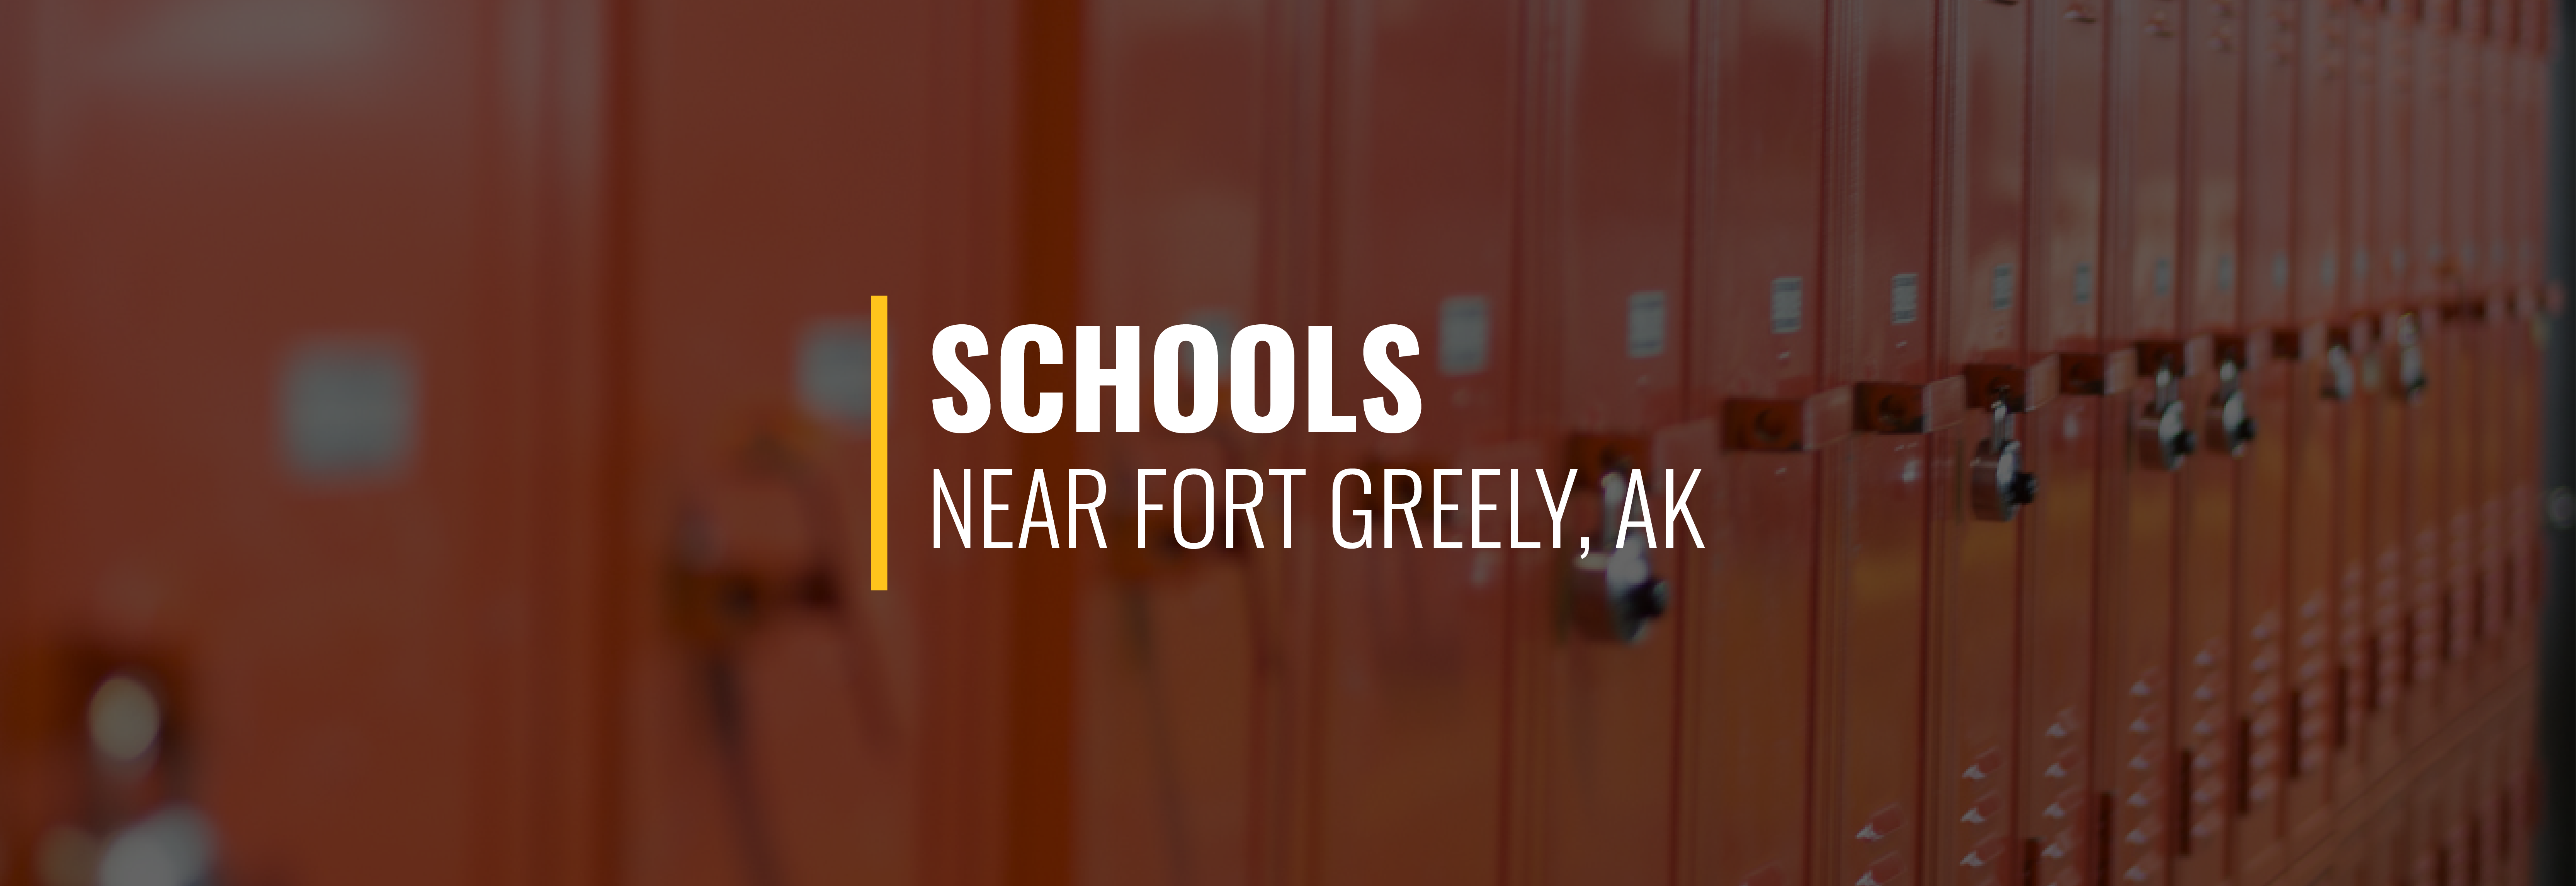 Fort Greely Schools